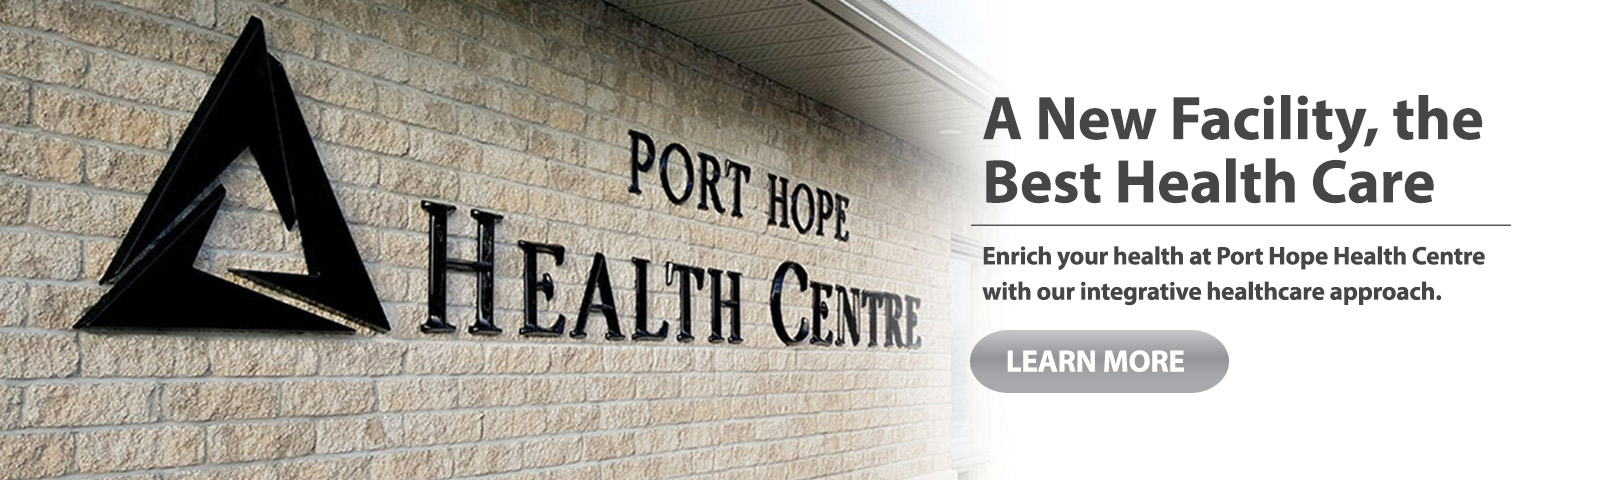 Port Hope Health Centre